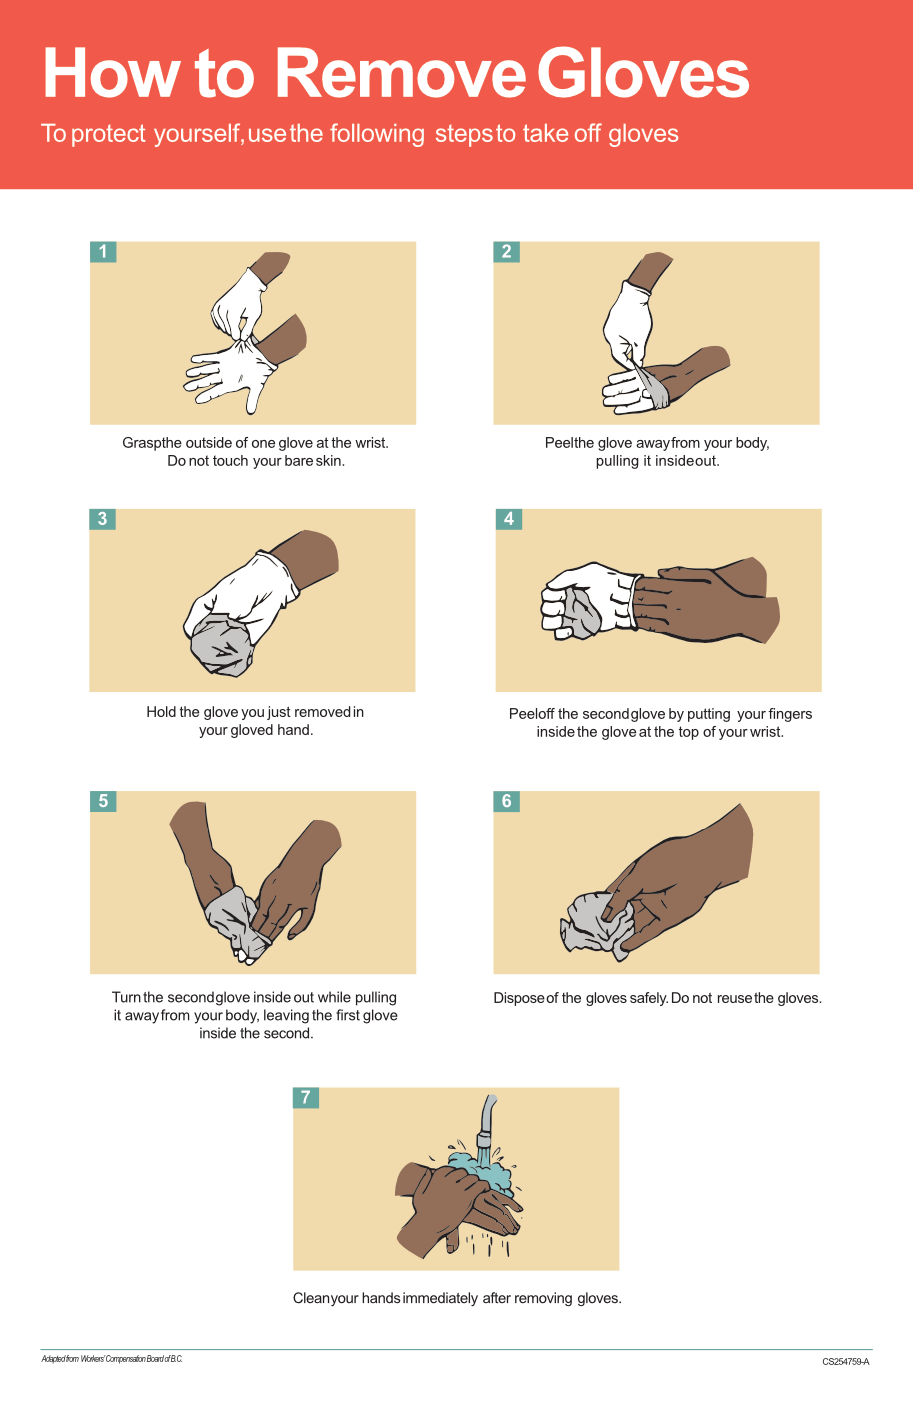 CDC Guide to Glove Removal